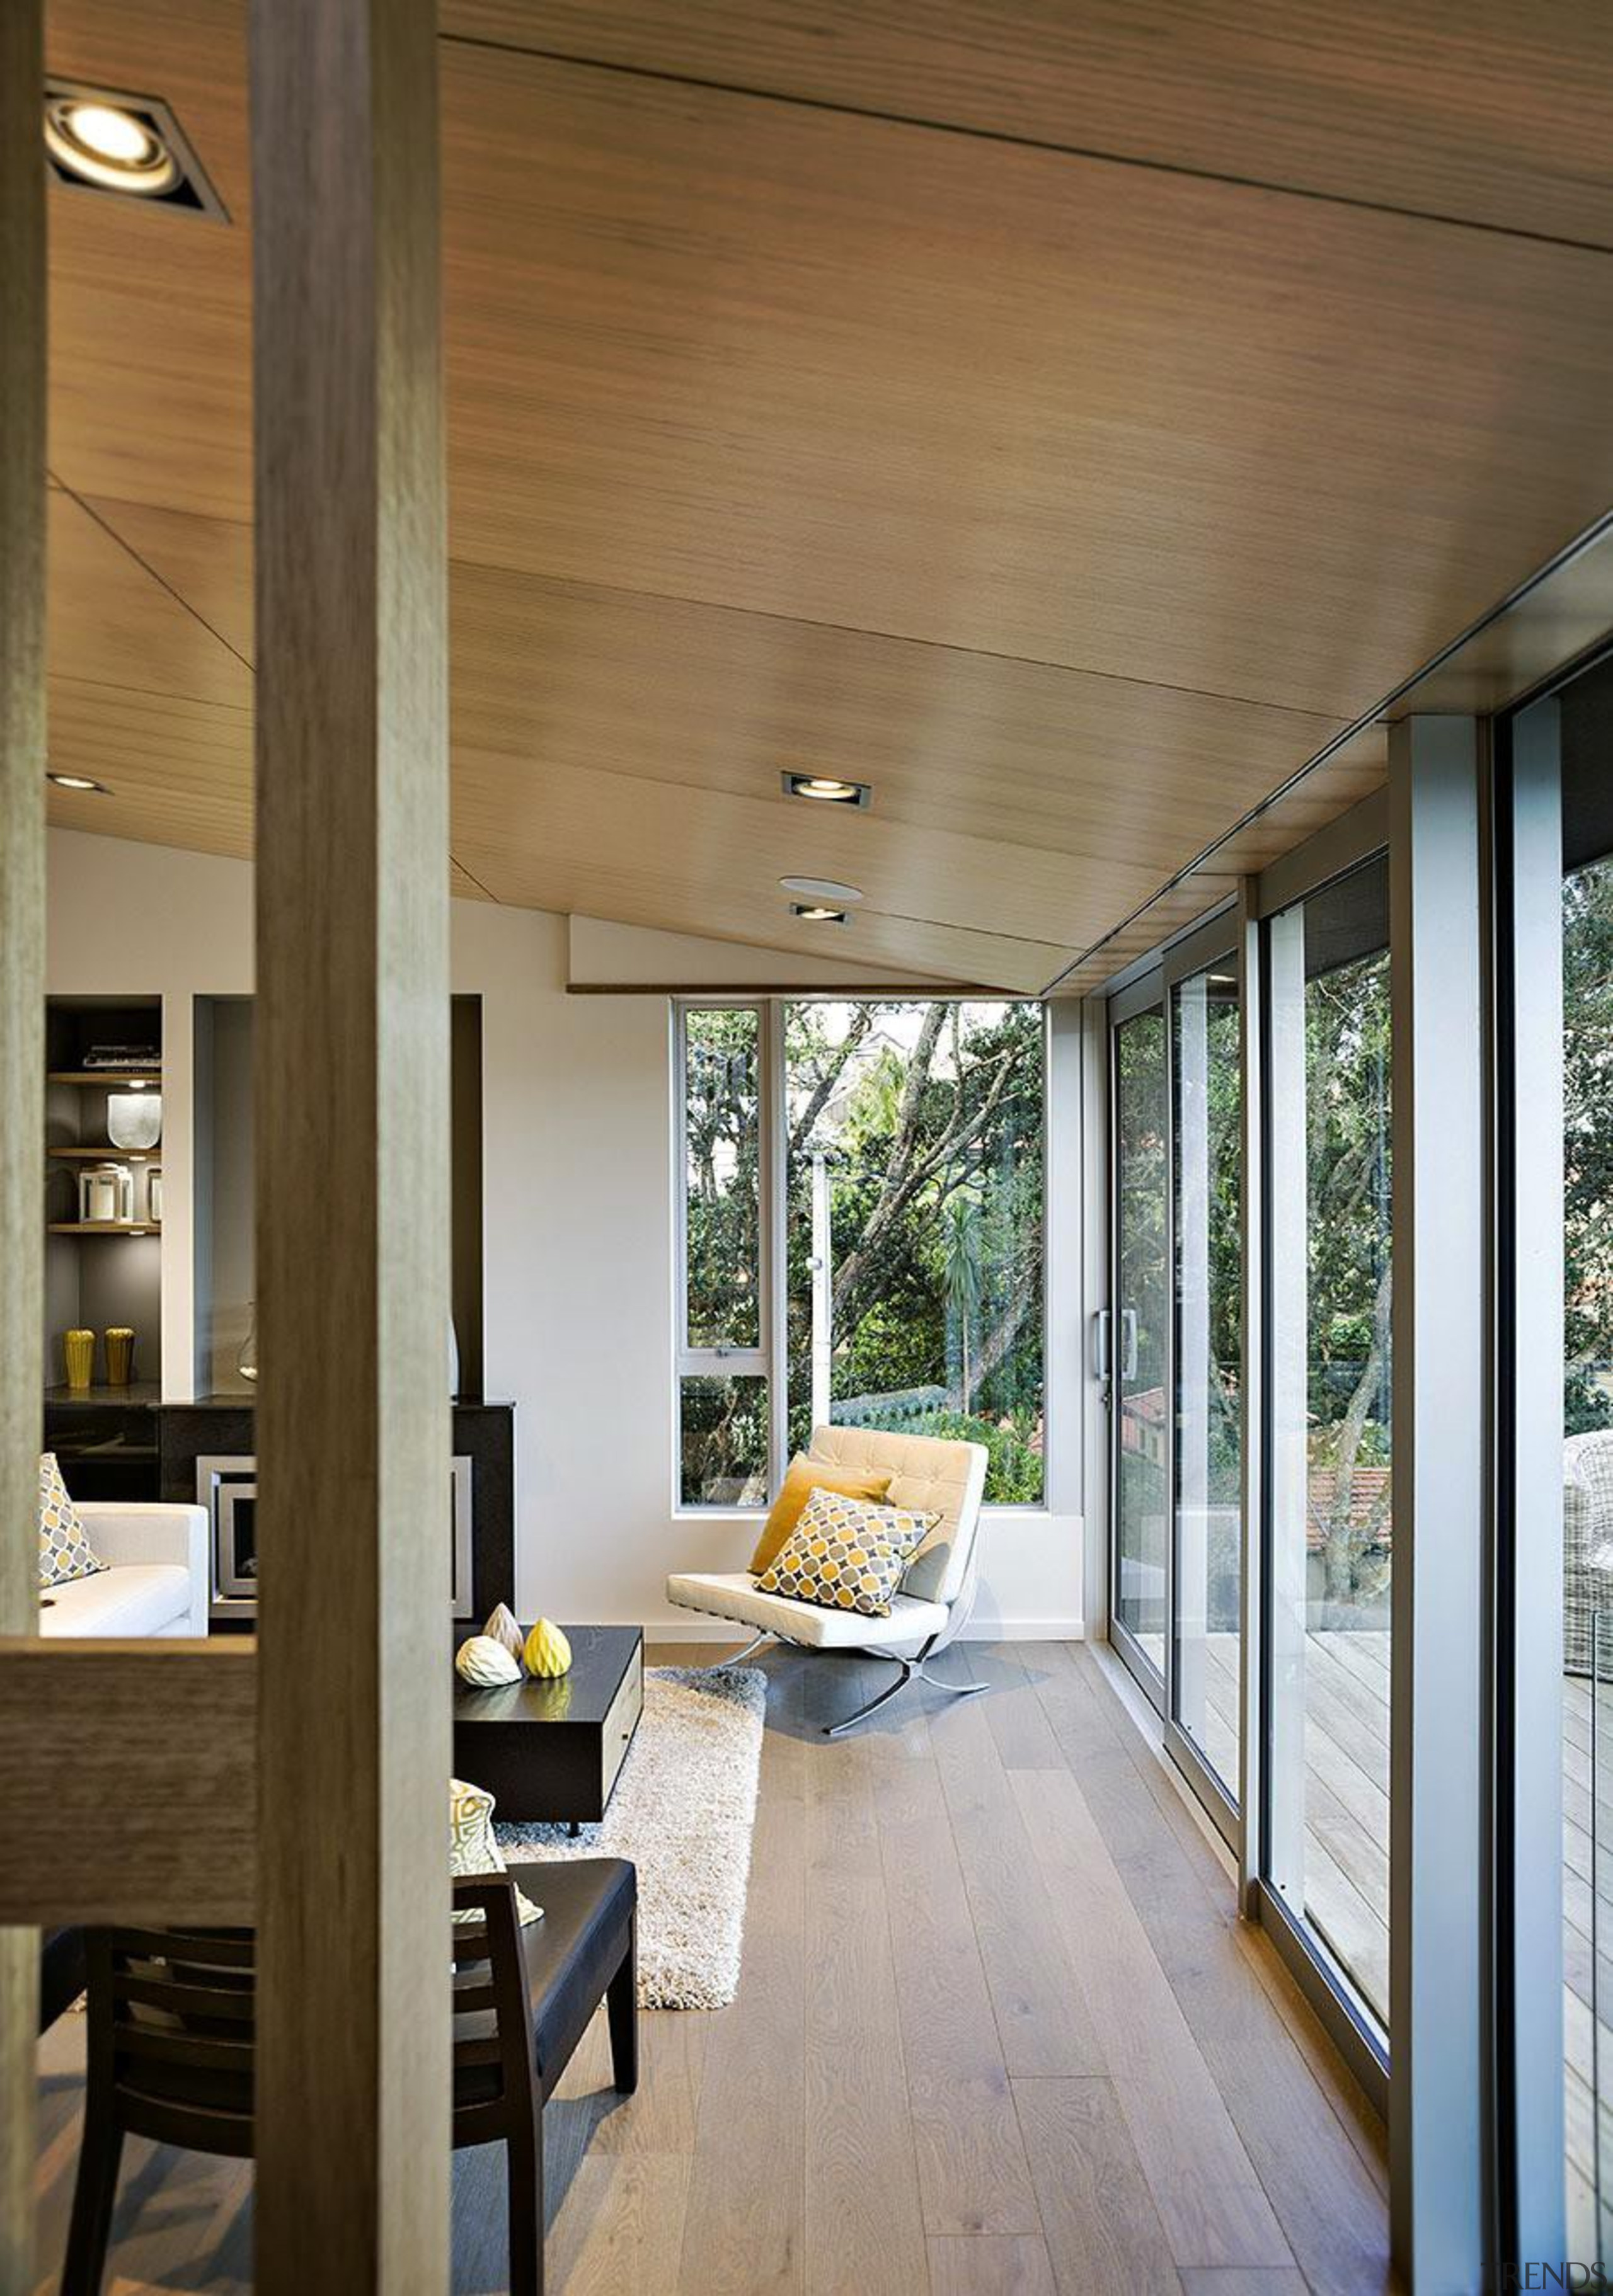 Windowmakers played a vital part in ensuring her architecture, ceiling, door, home, house, interior design, porch, siding, window, wood, brown